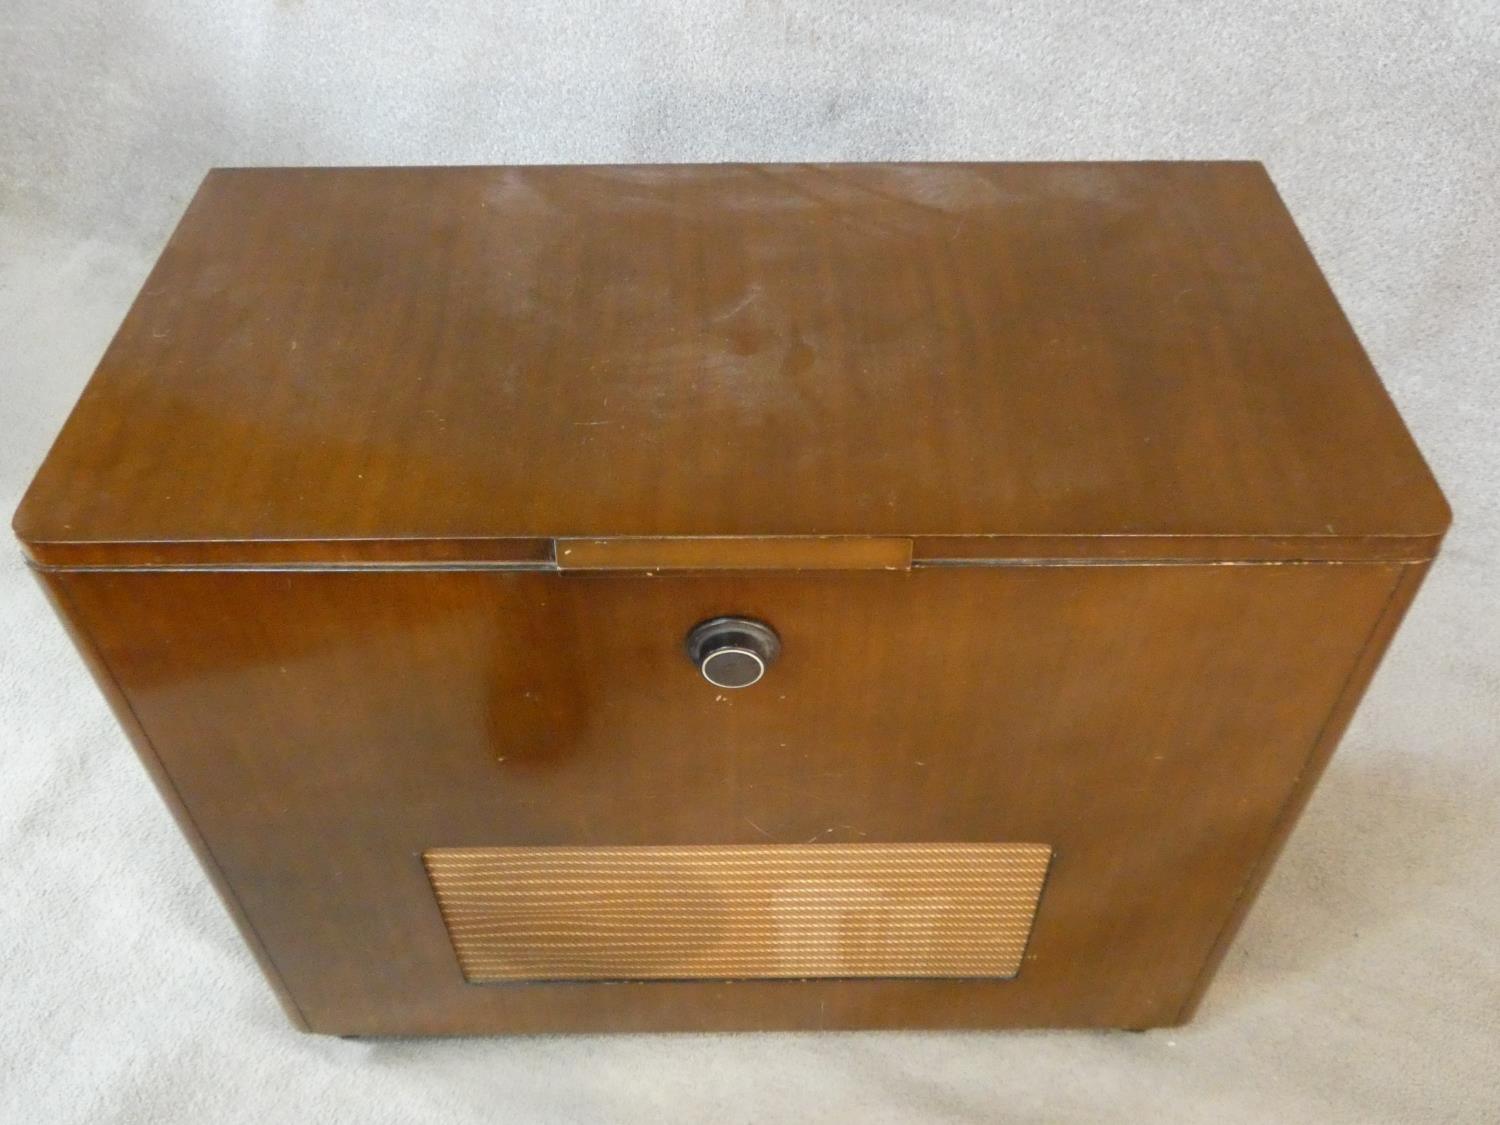 A vintage teak floor standing Ekco radiogram and record player. H.72 W.83 D.39cm - Image 3 of 17